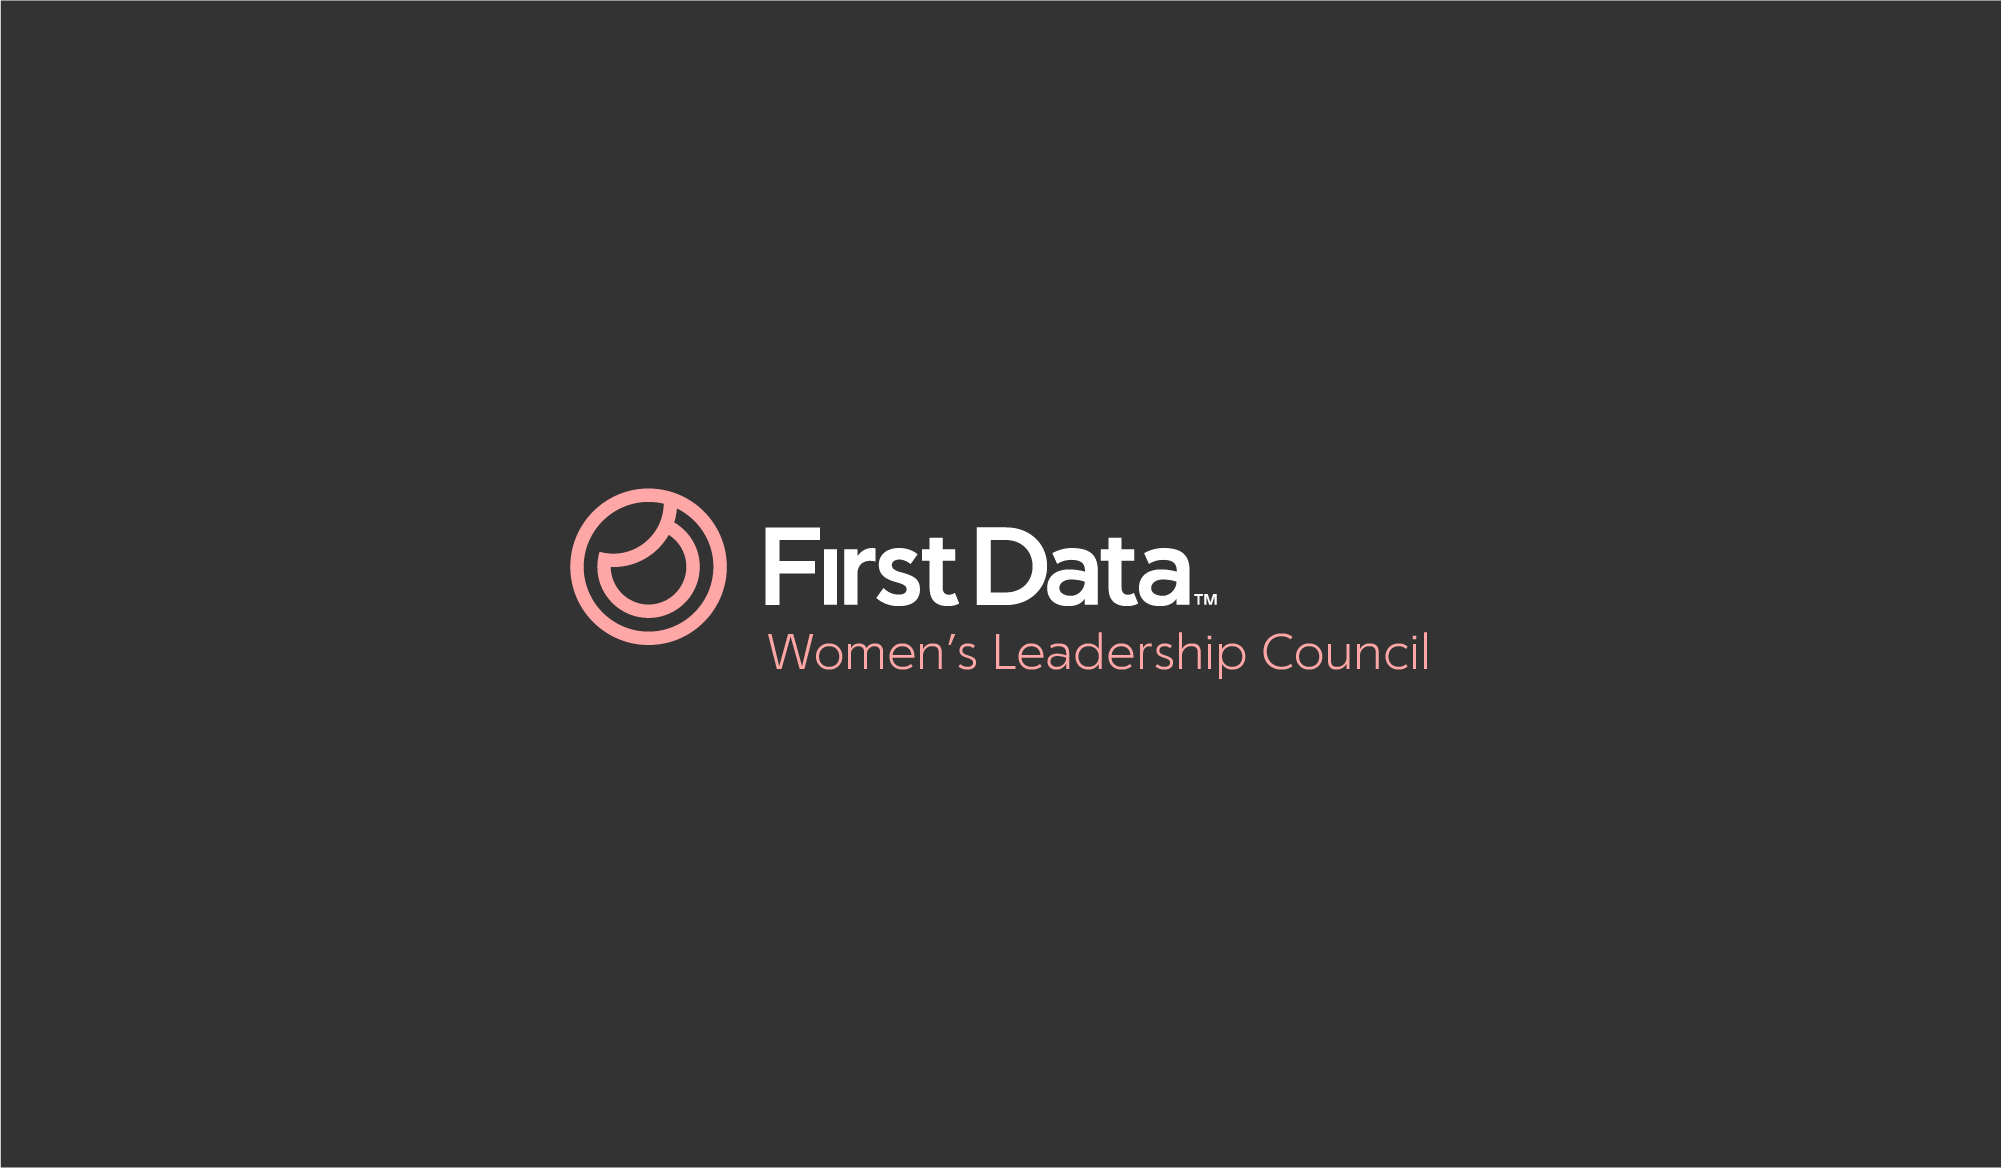 sb-logo-firstdata-12